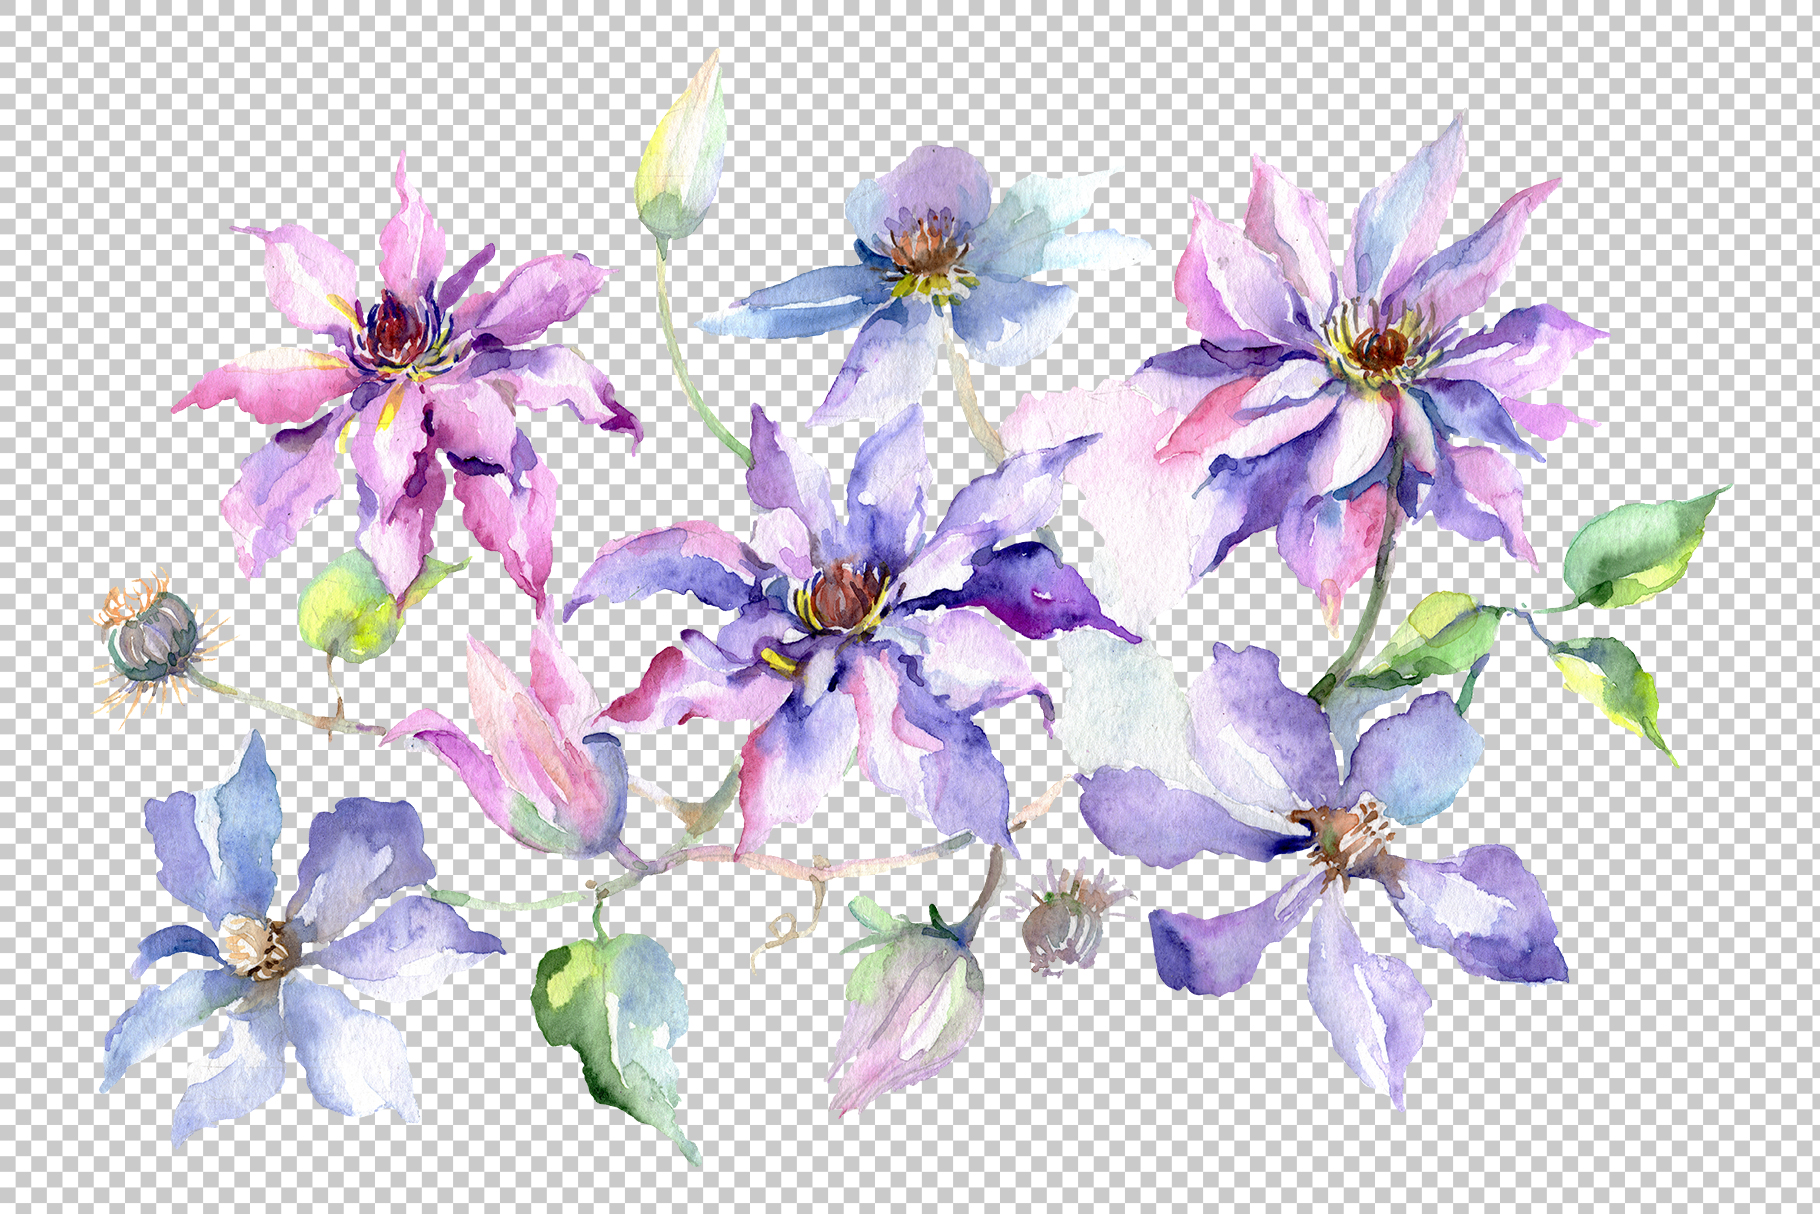 Branch of gentle purple flowers Watercolor png example image 2